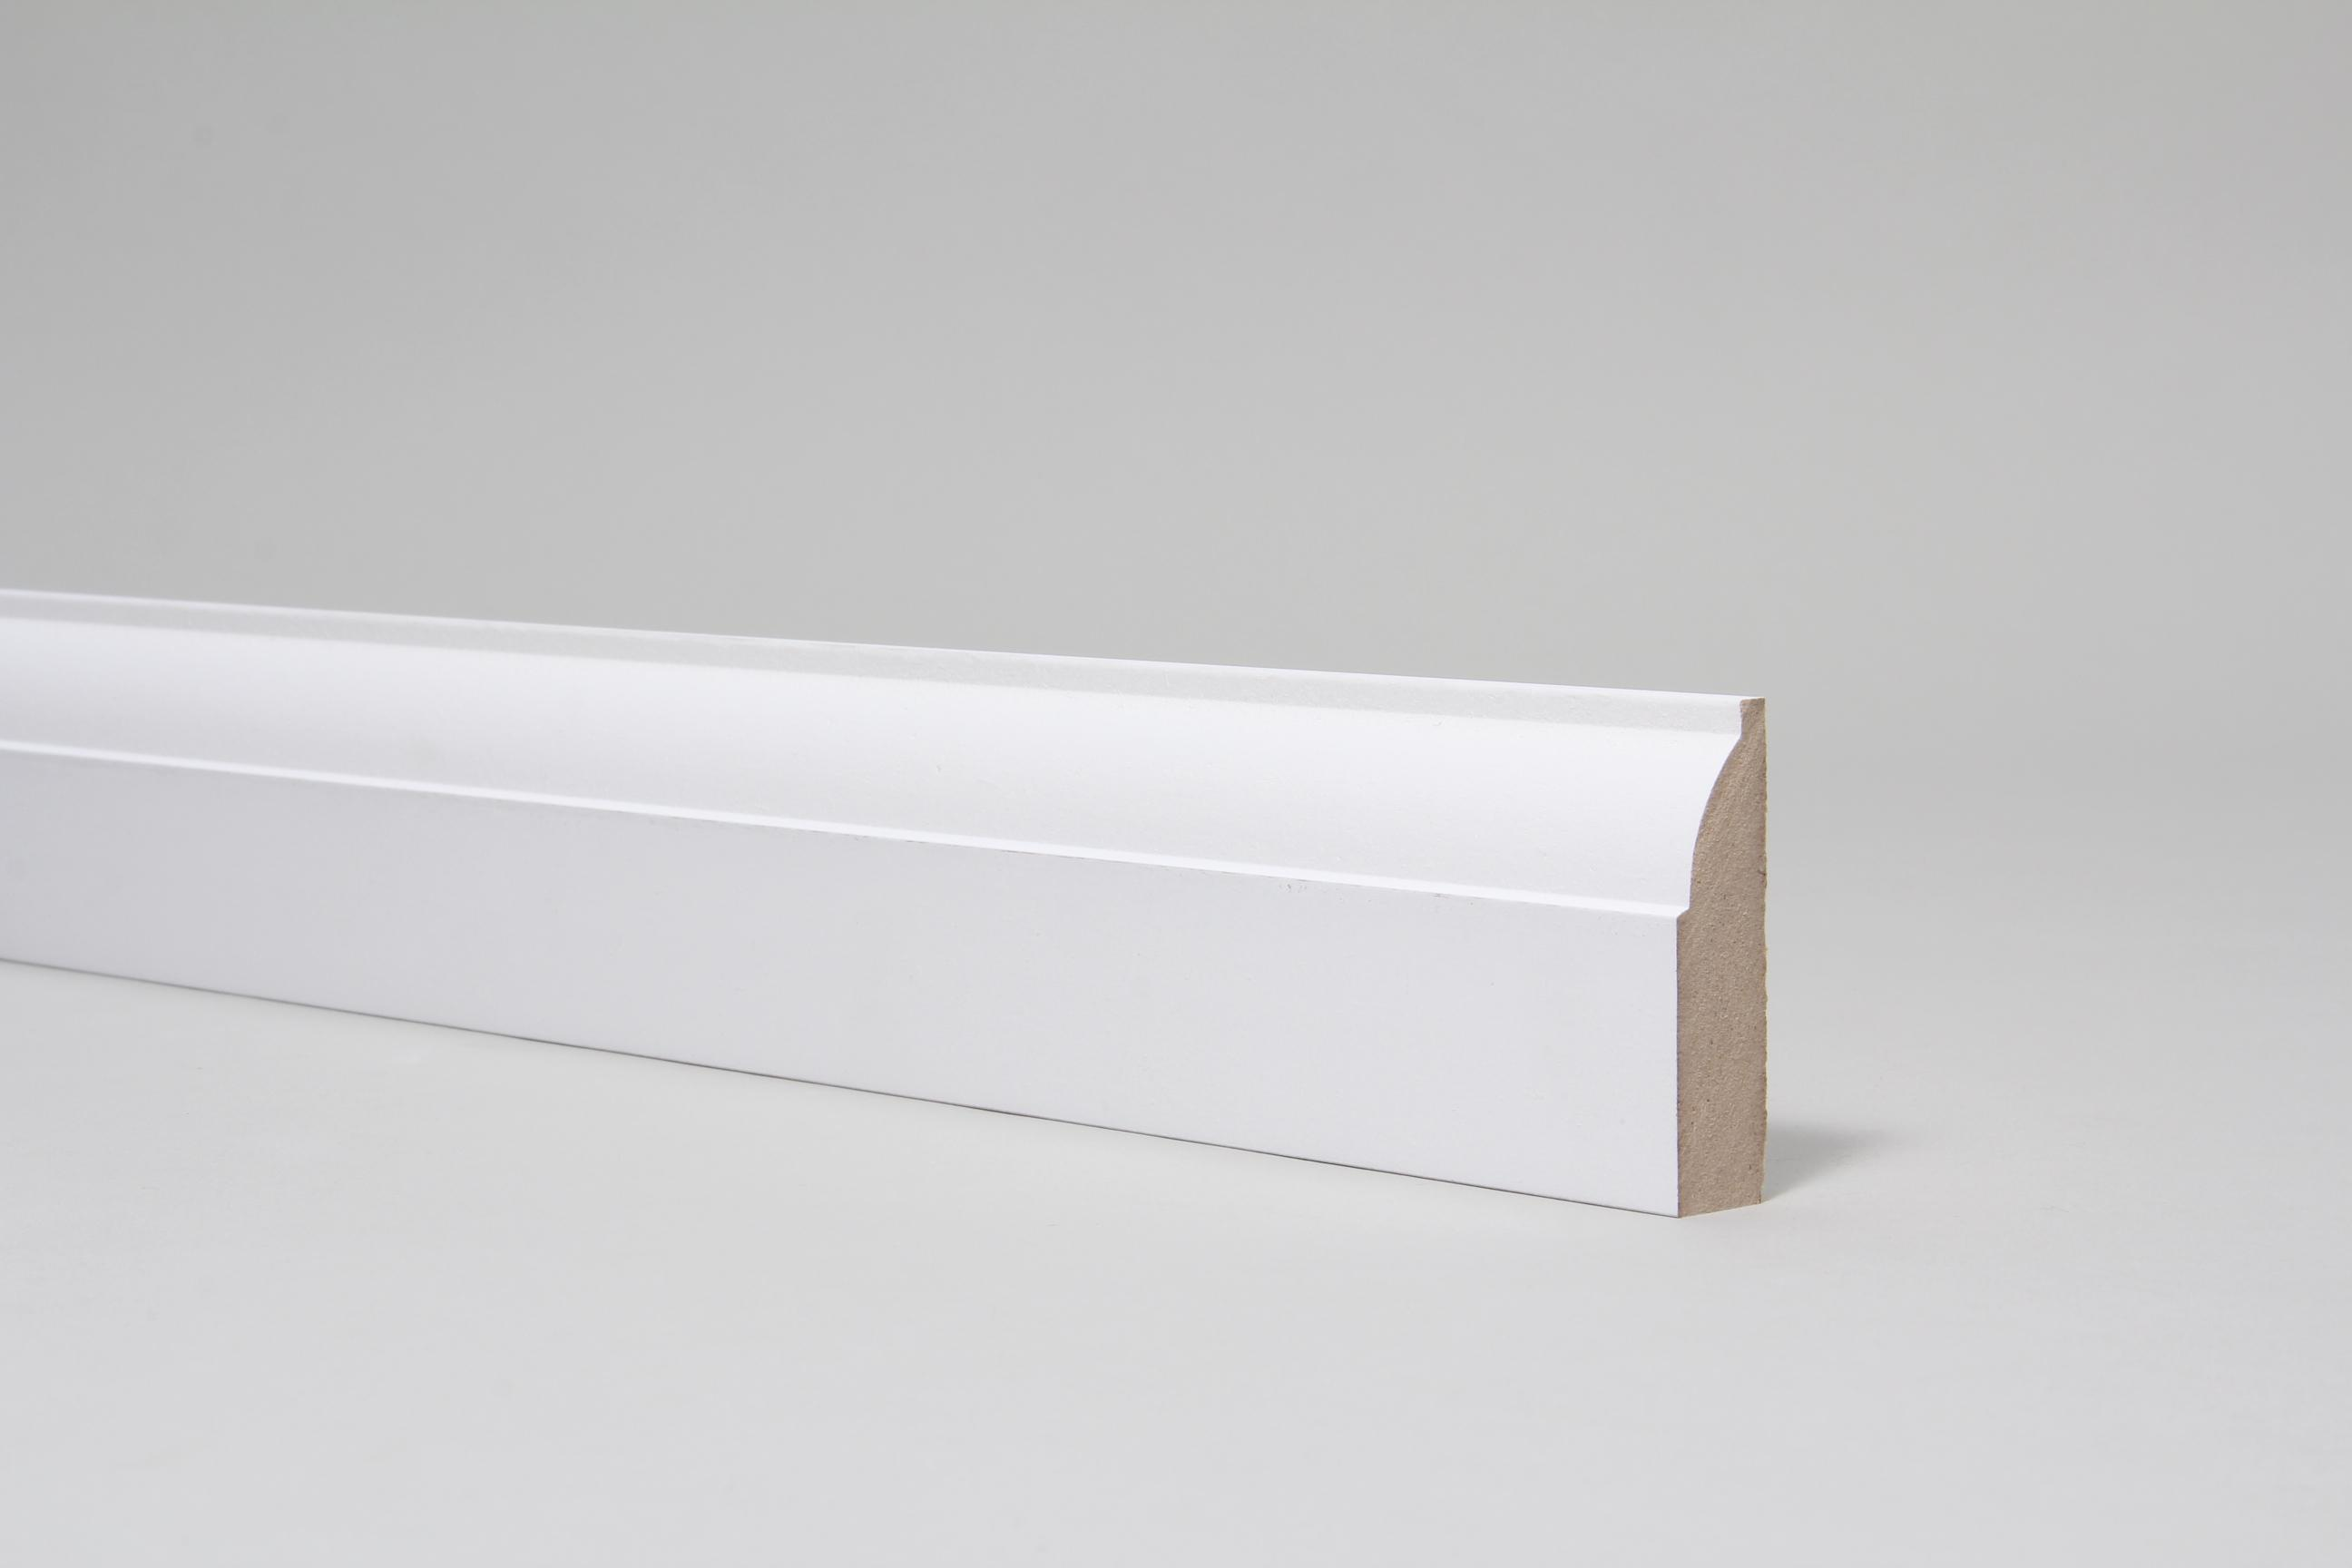 Ovolo 18mm x 68mm x 4.4 Mtr Primed